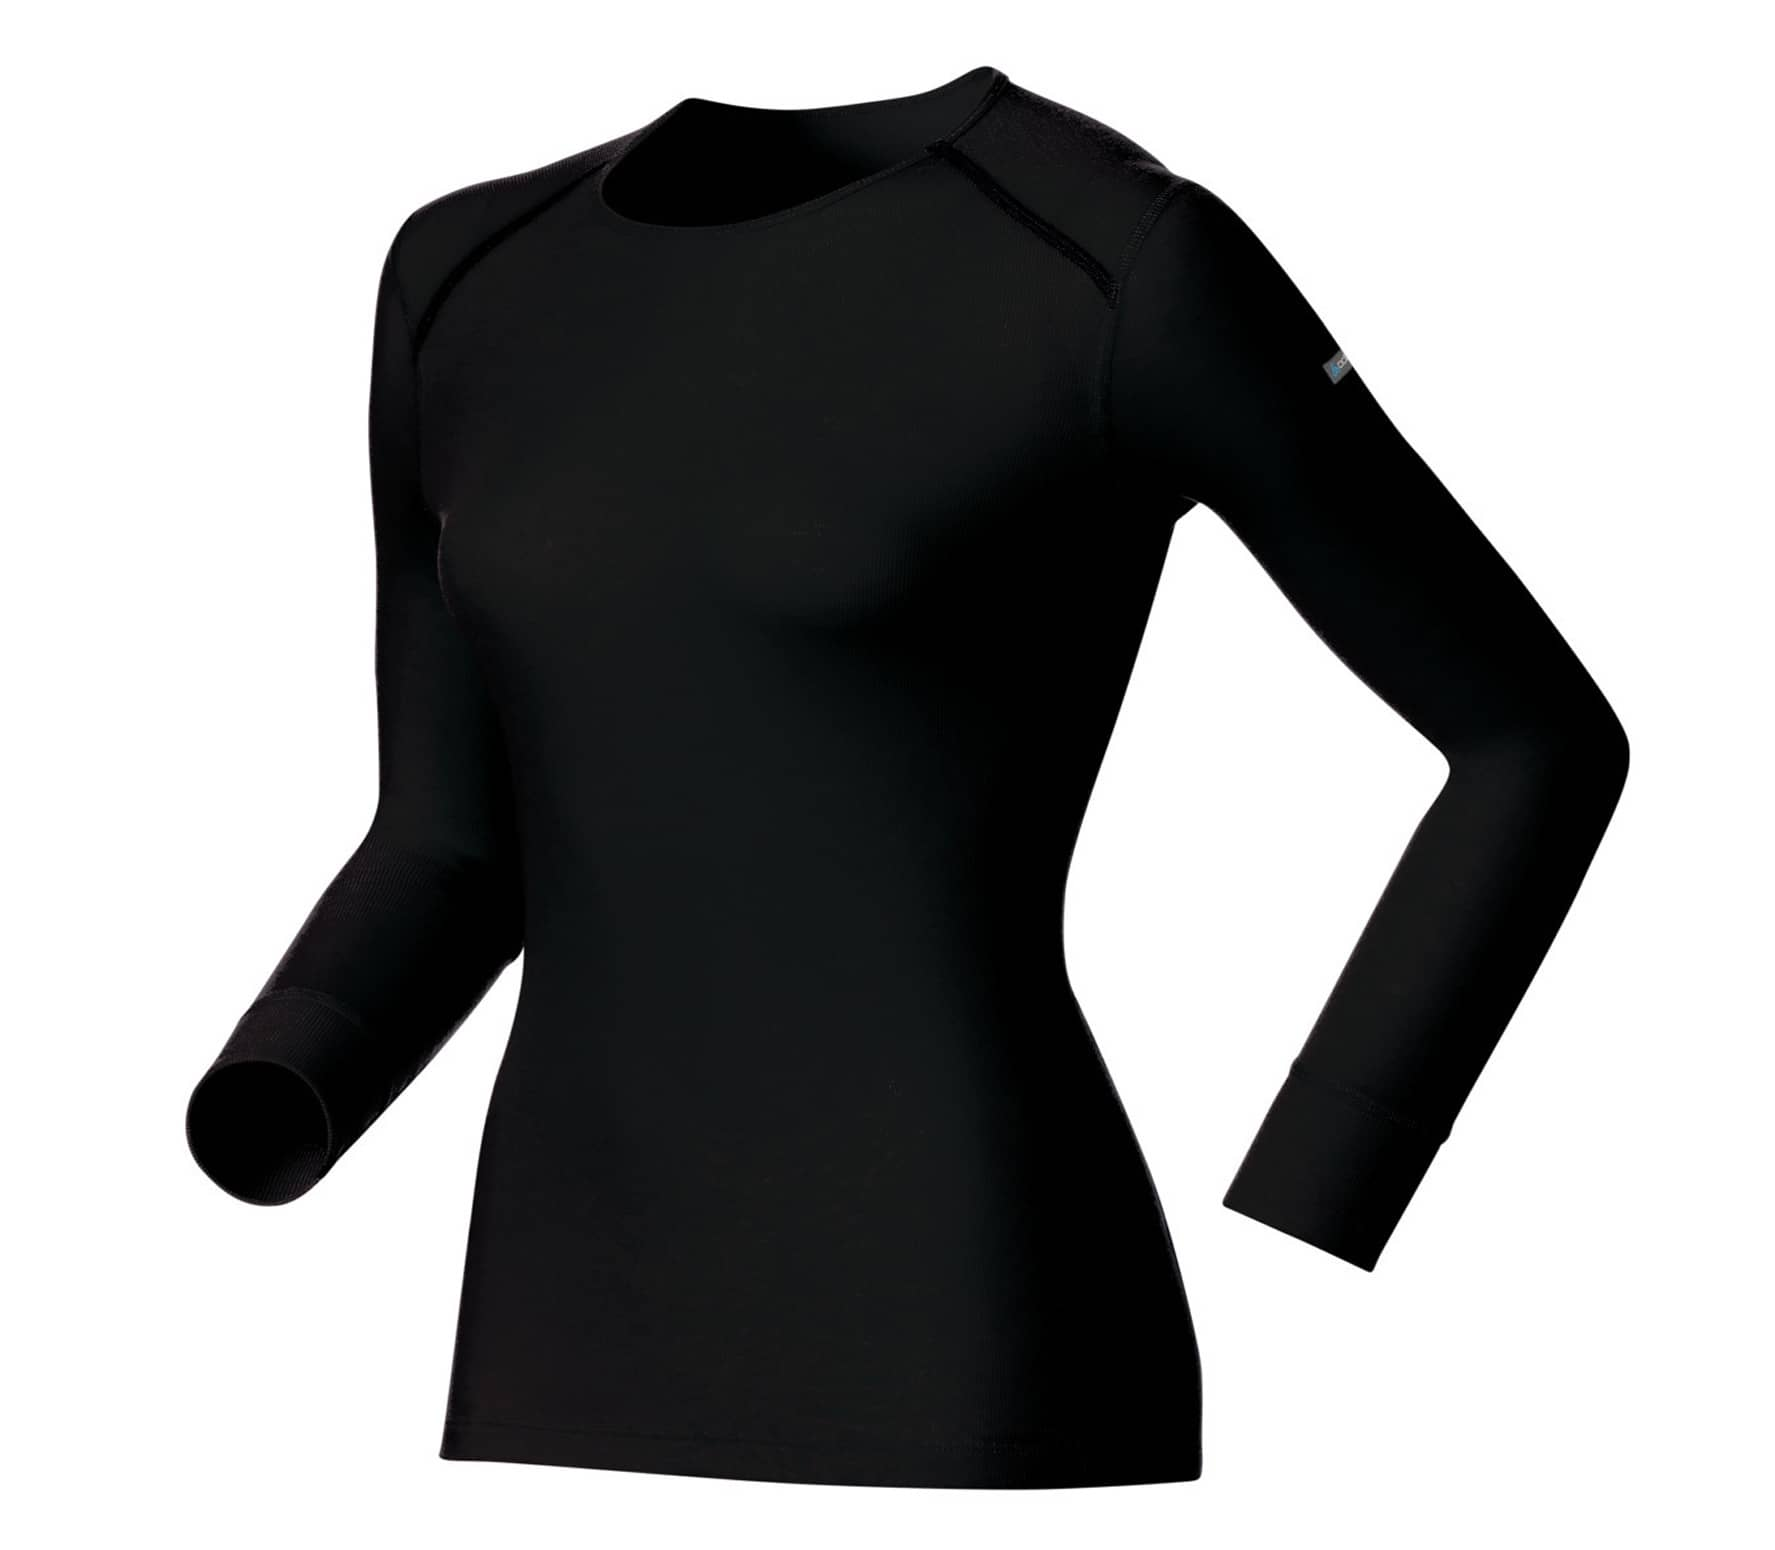 Longsleeve Crew Neck Warm Damen Funktionsshirt (schwarz) - XL